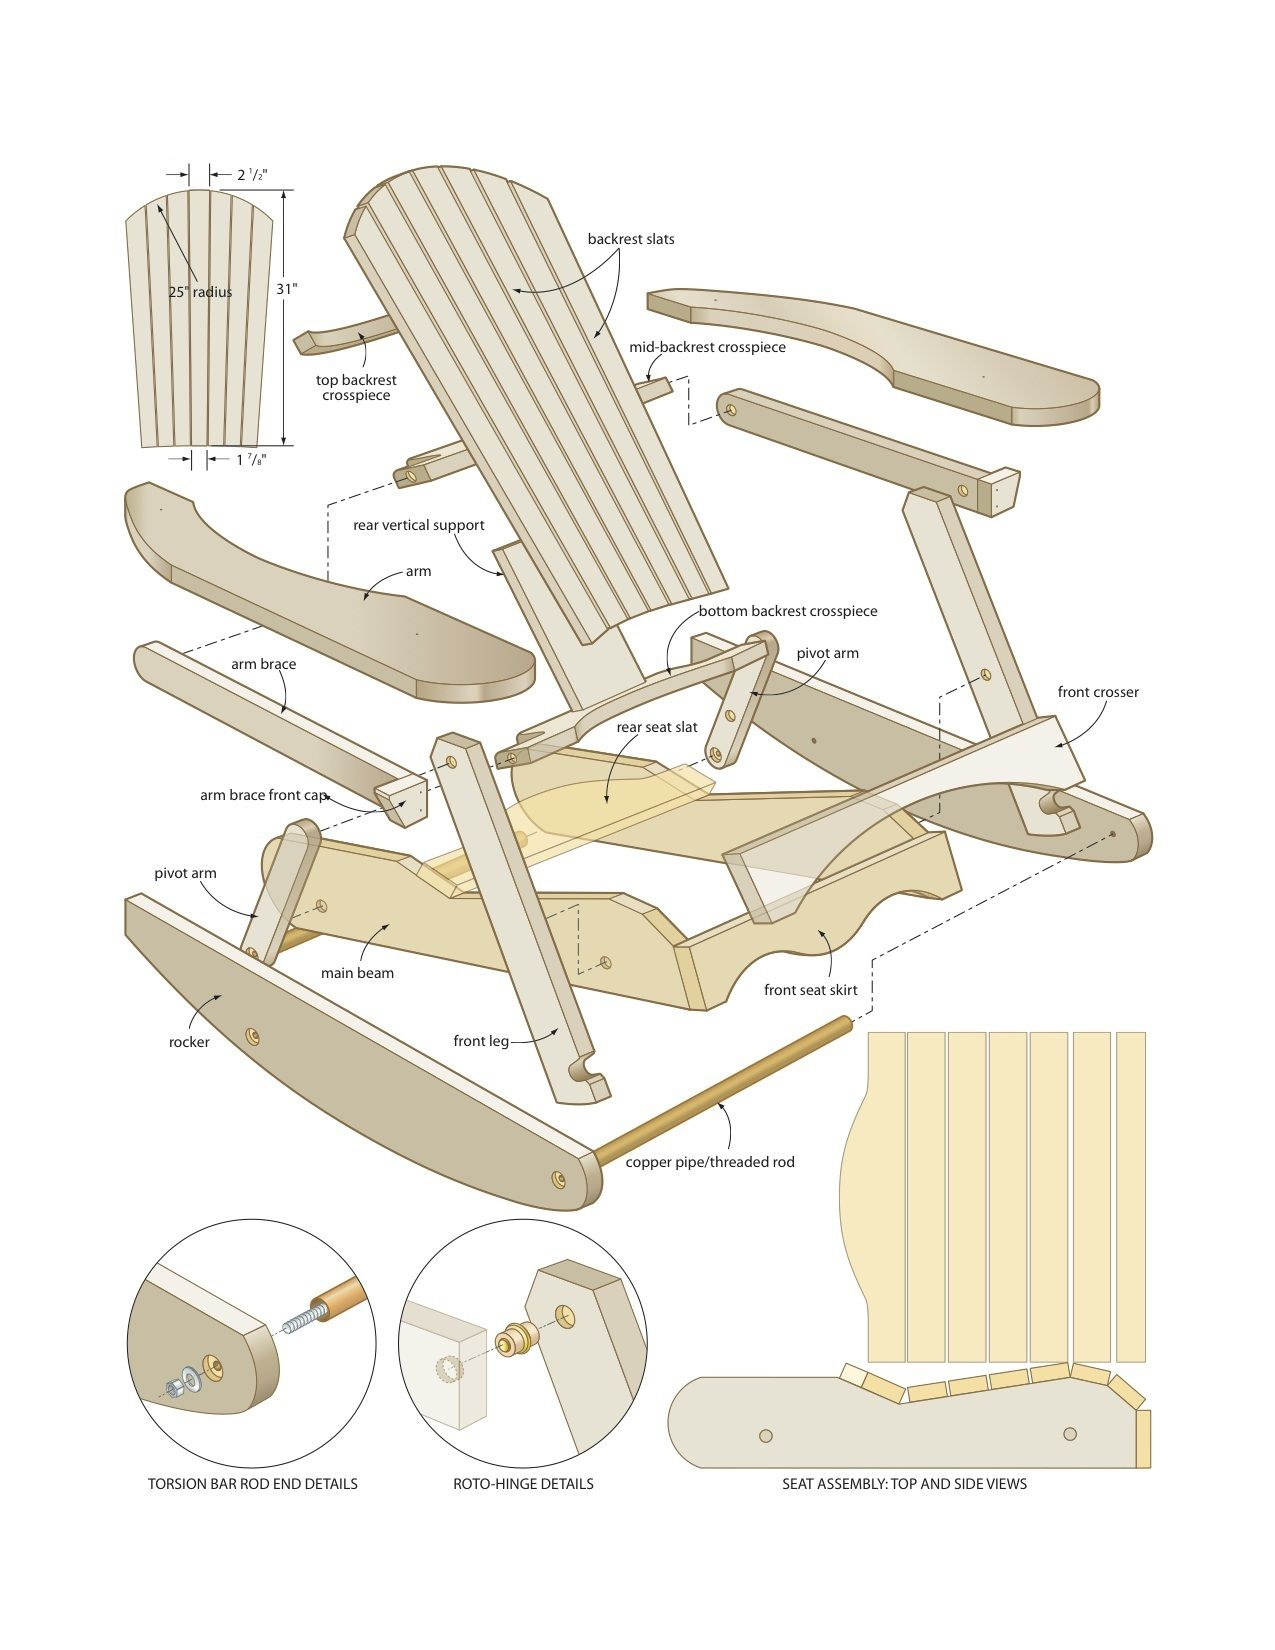 How to make a simple wooden rocking chair - Teds Woodworking Muskoka Rocking Chair Woodworking Plans Woodshop Plans Projects You Can Start Building Today